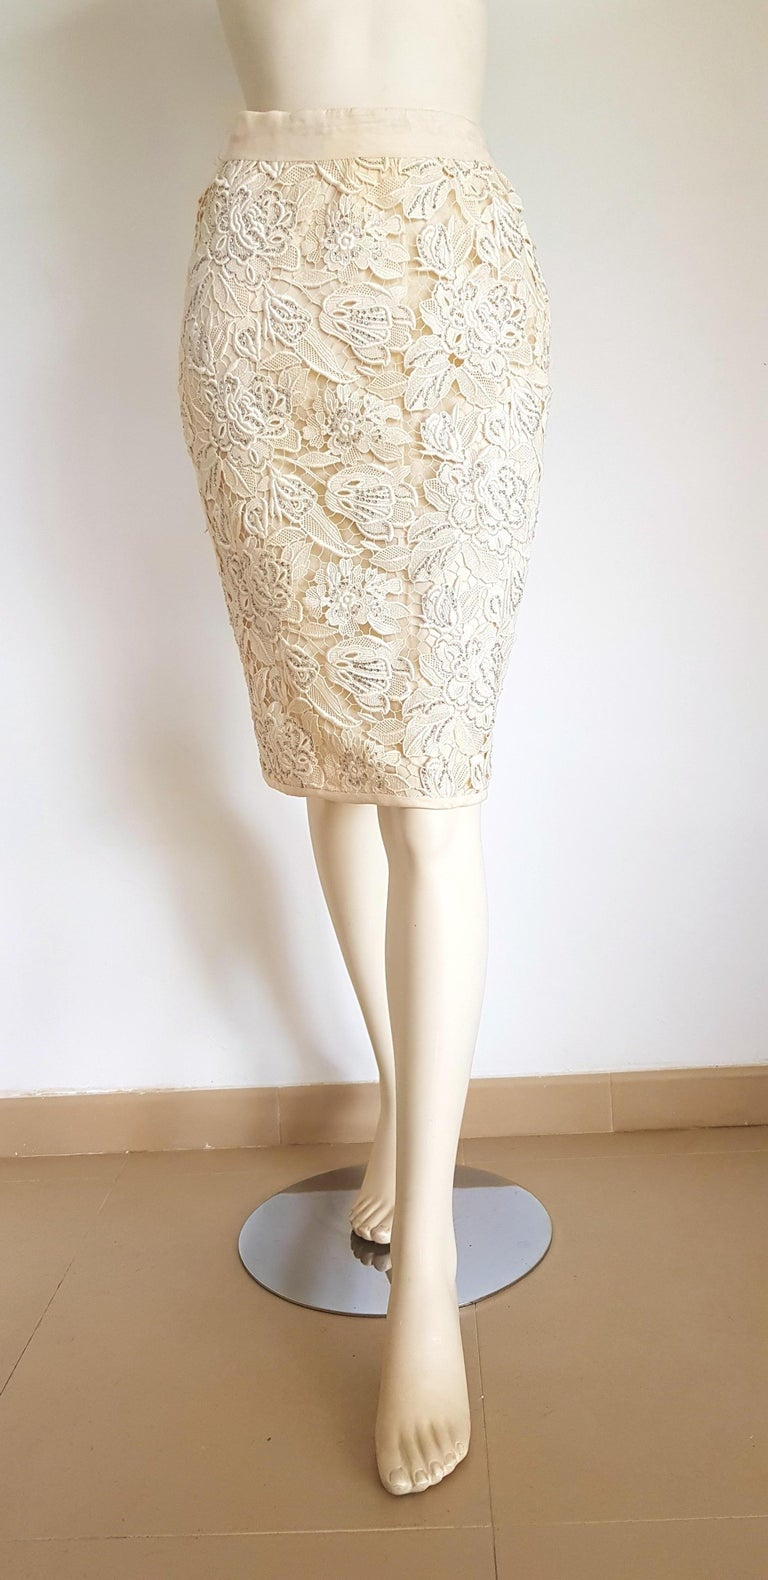 VALENTINO Haute Couture Swarovski Diamonds Embroidered Lace Beige Suit - Unworn For Sale 5